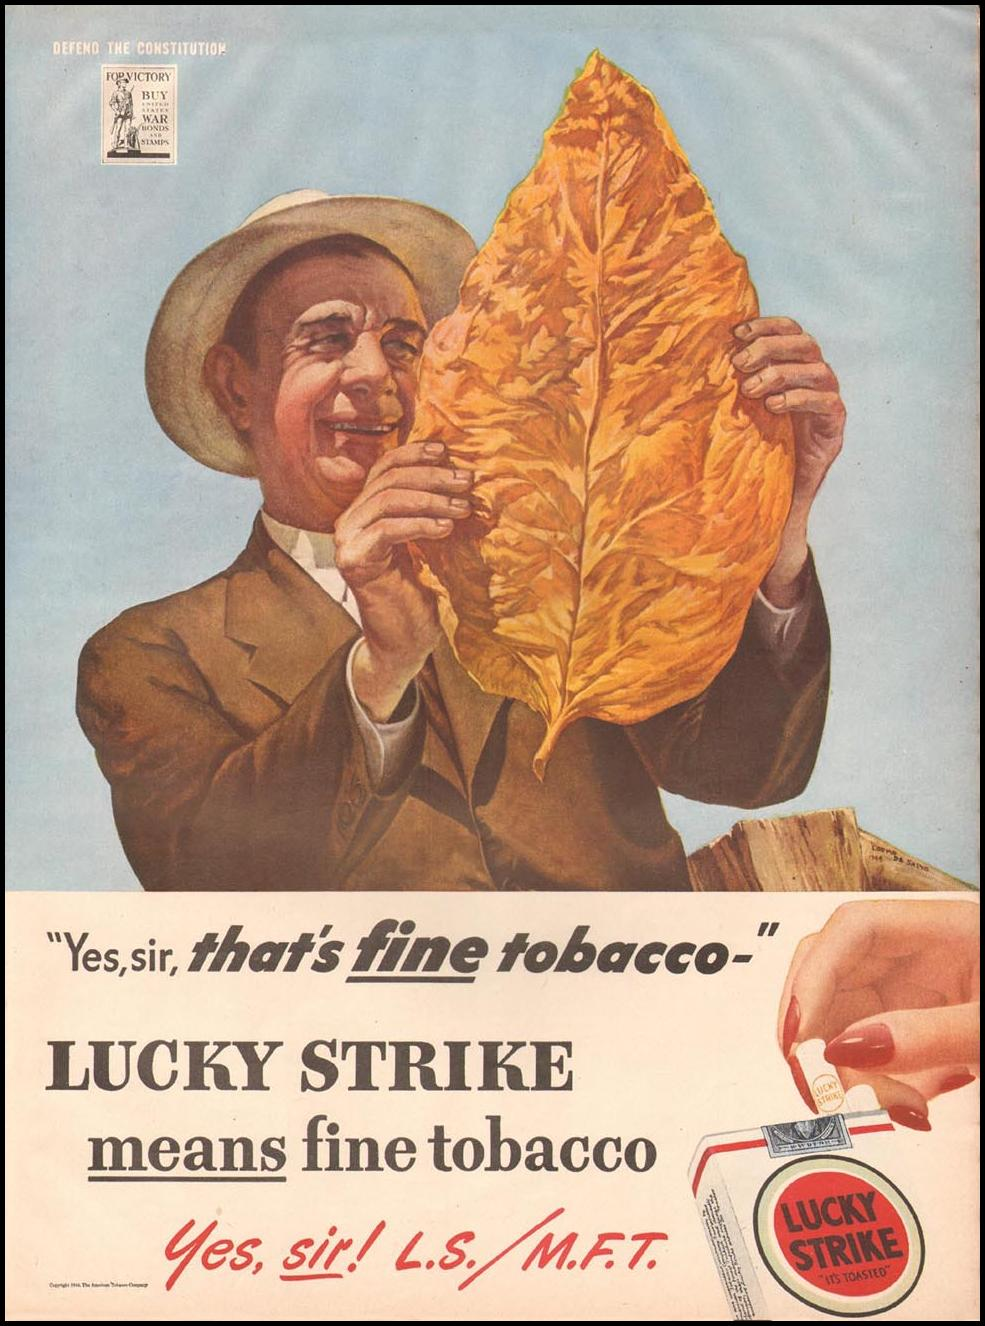 LUCKY STRIKE CIGARETTES LIFE 10/23/1944 p. 42